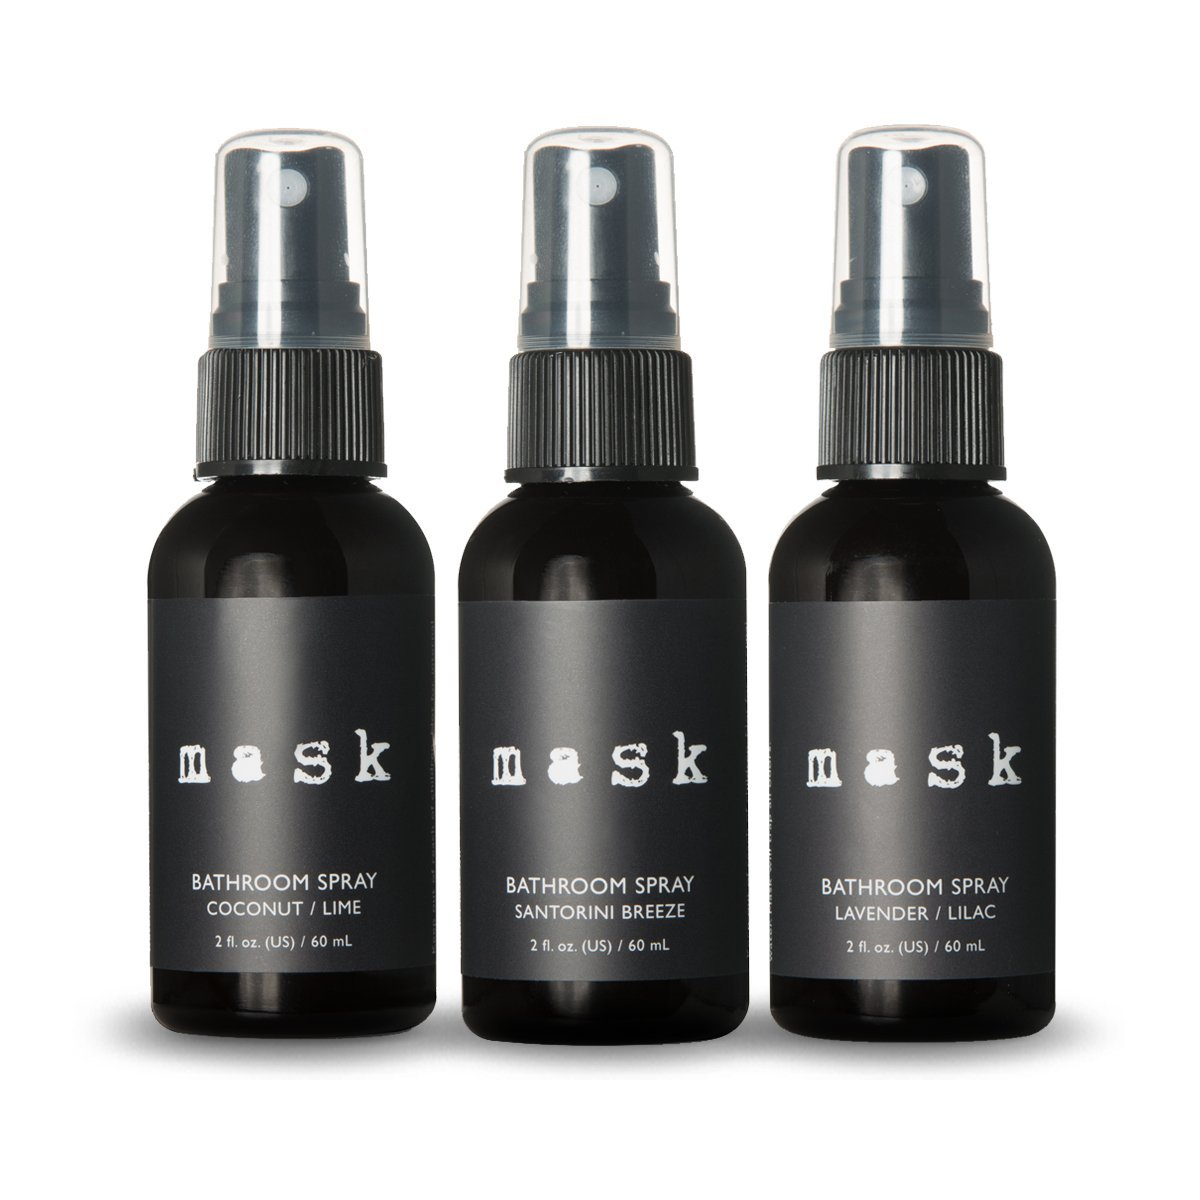 Buy Mask Bathroom Spray 2oz 6 Pack 6 X Different Fragrances Toilet Spray Before You Go Deodorizer Best Value Air Freshener Poo Poop Spray Perfect For Travel In Cheap Price On Alibaba Com